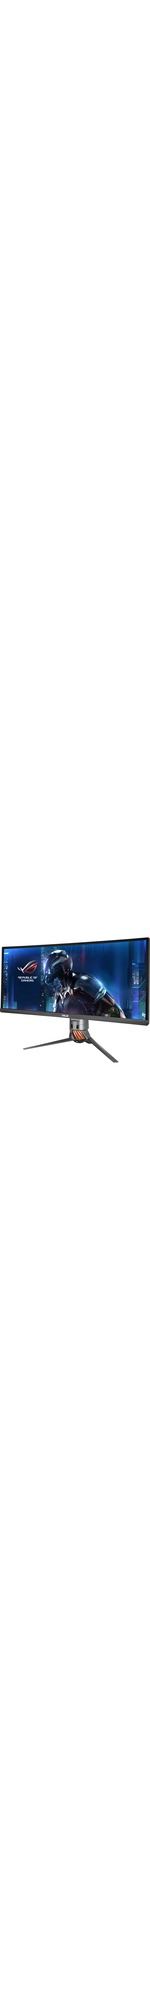 ROG Swift PG348Q 34And#34; LED Monitor - 21:9 - 5 ms